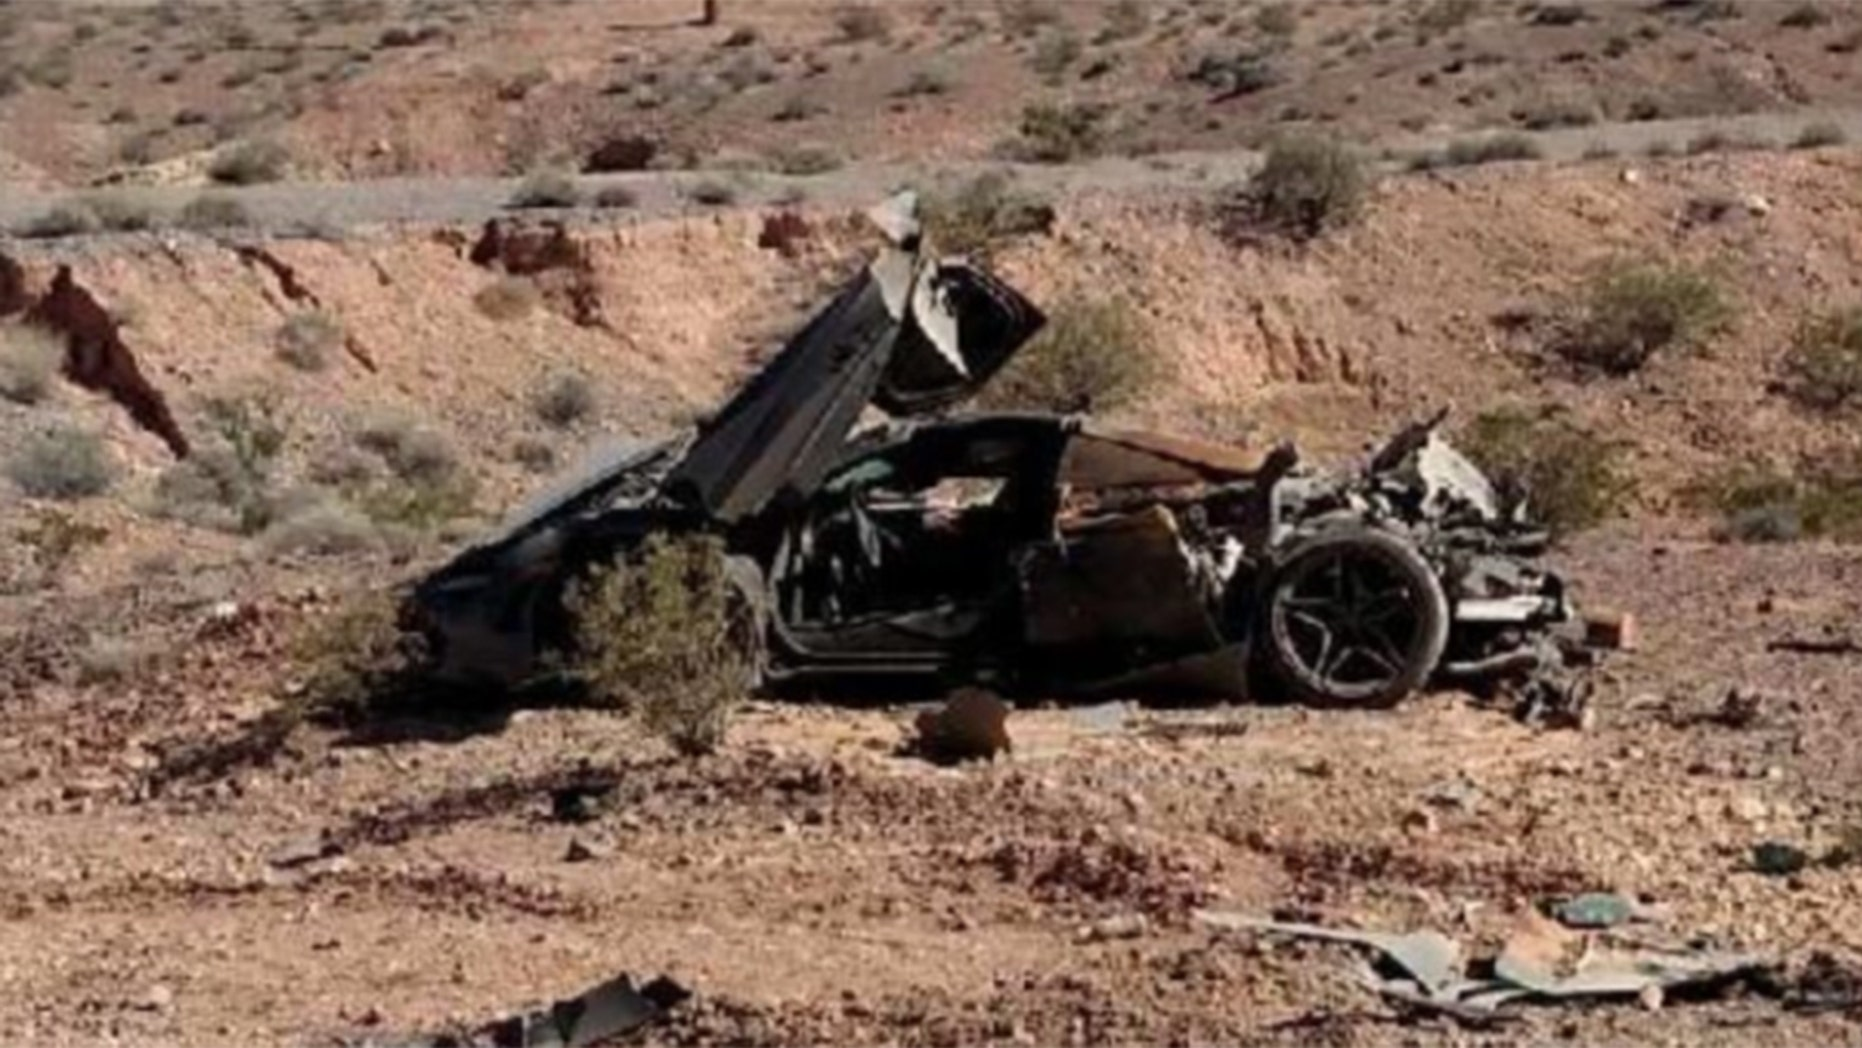 Nevada police find wrecked $300,000 McLaren supercar in the